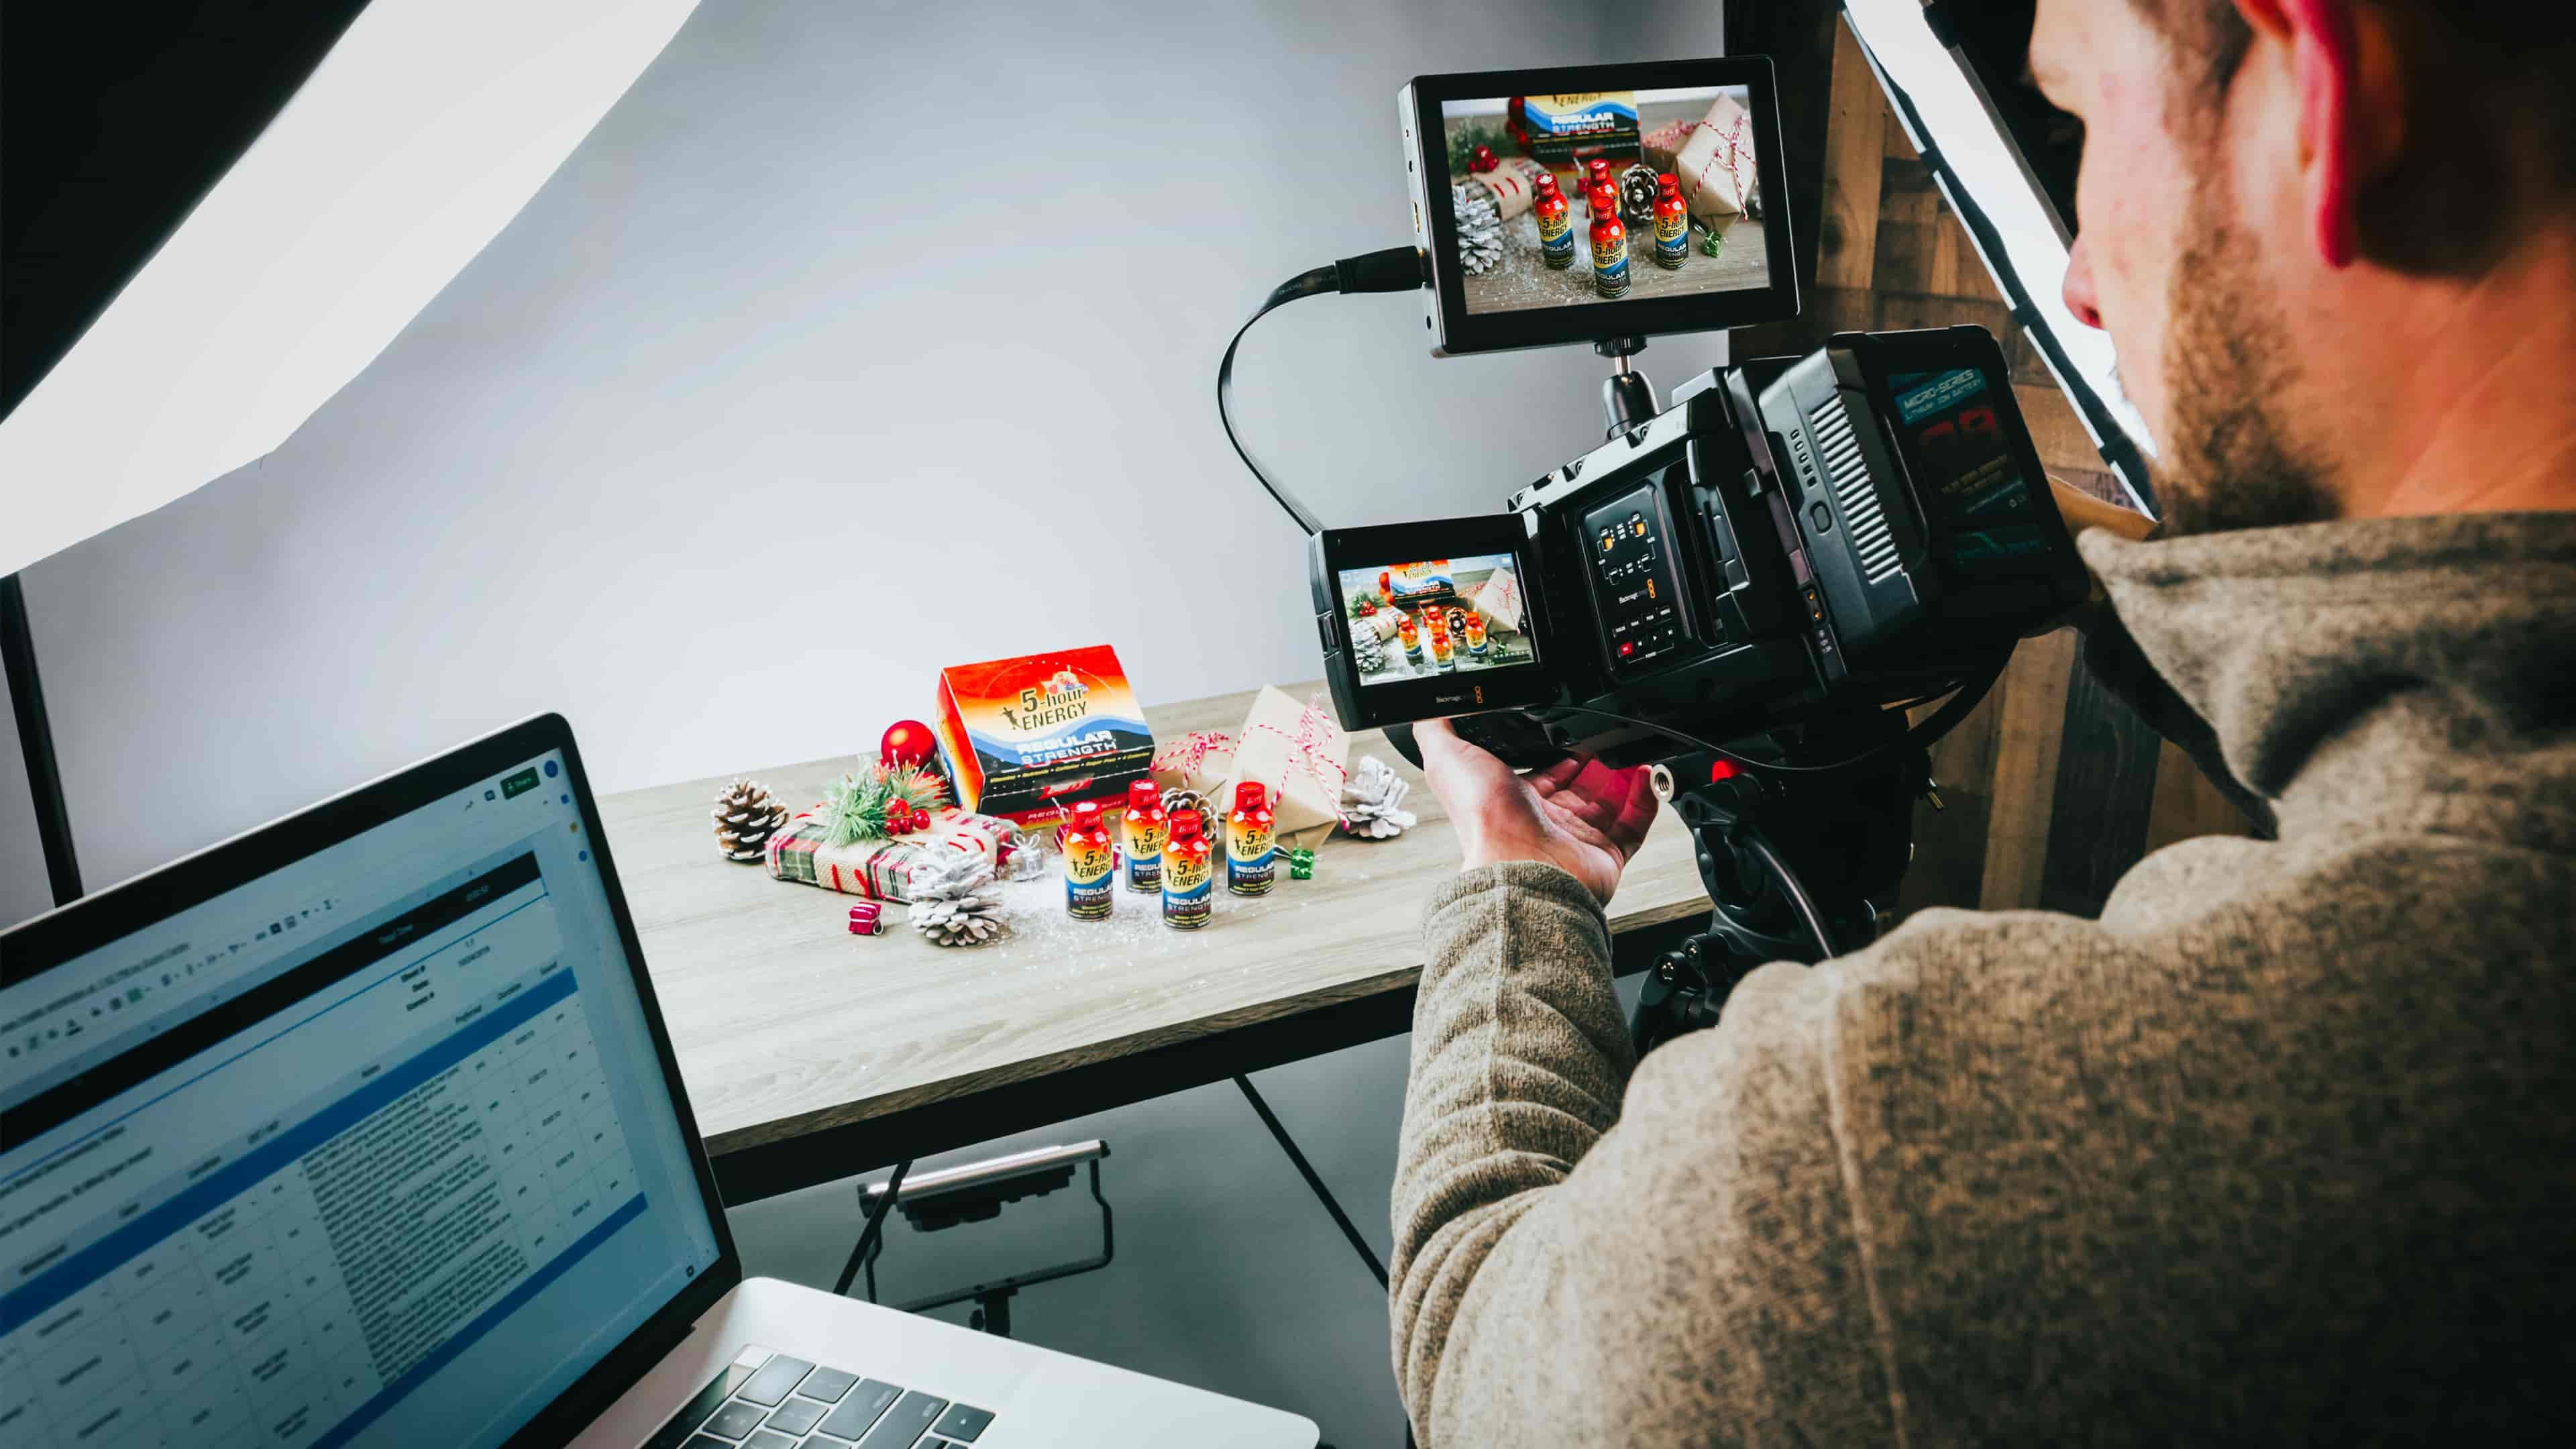 Product Videos for eCommerce Brands by Results Imagery